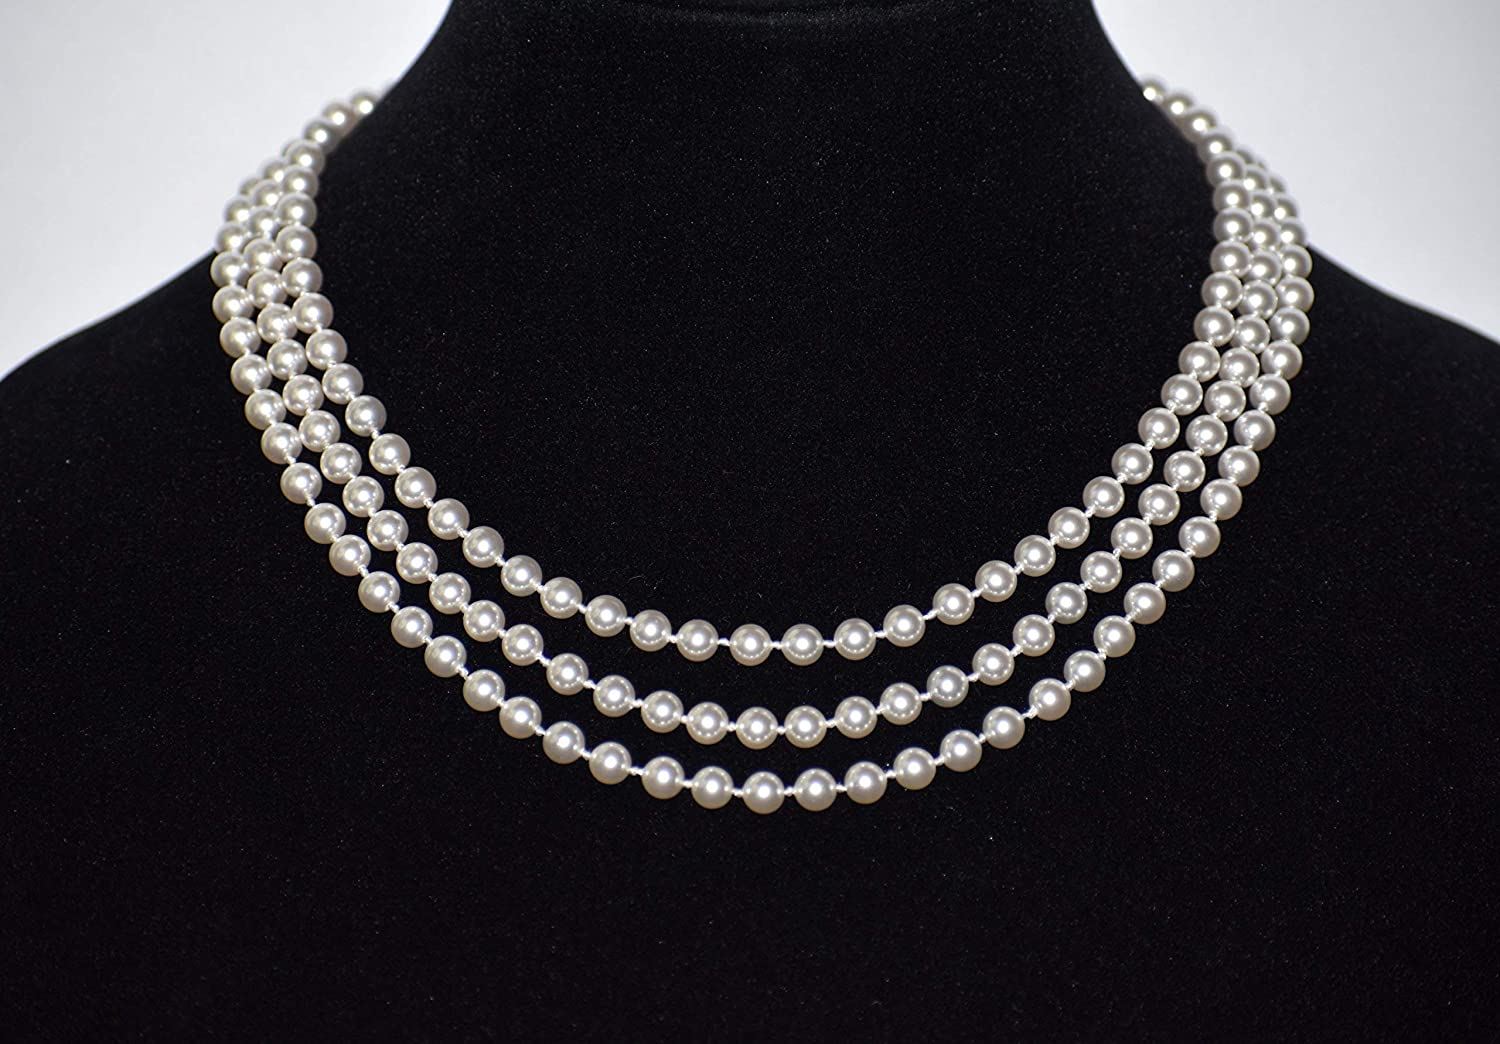 4acbcb108022d Three Row knotted White Swarovski Pearl Necklace For Women Sterling Silver  Clasp.